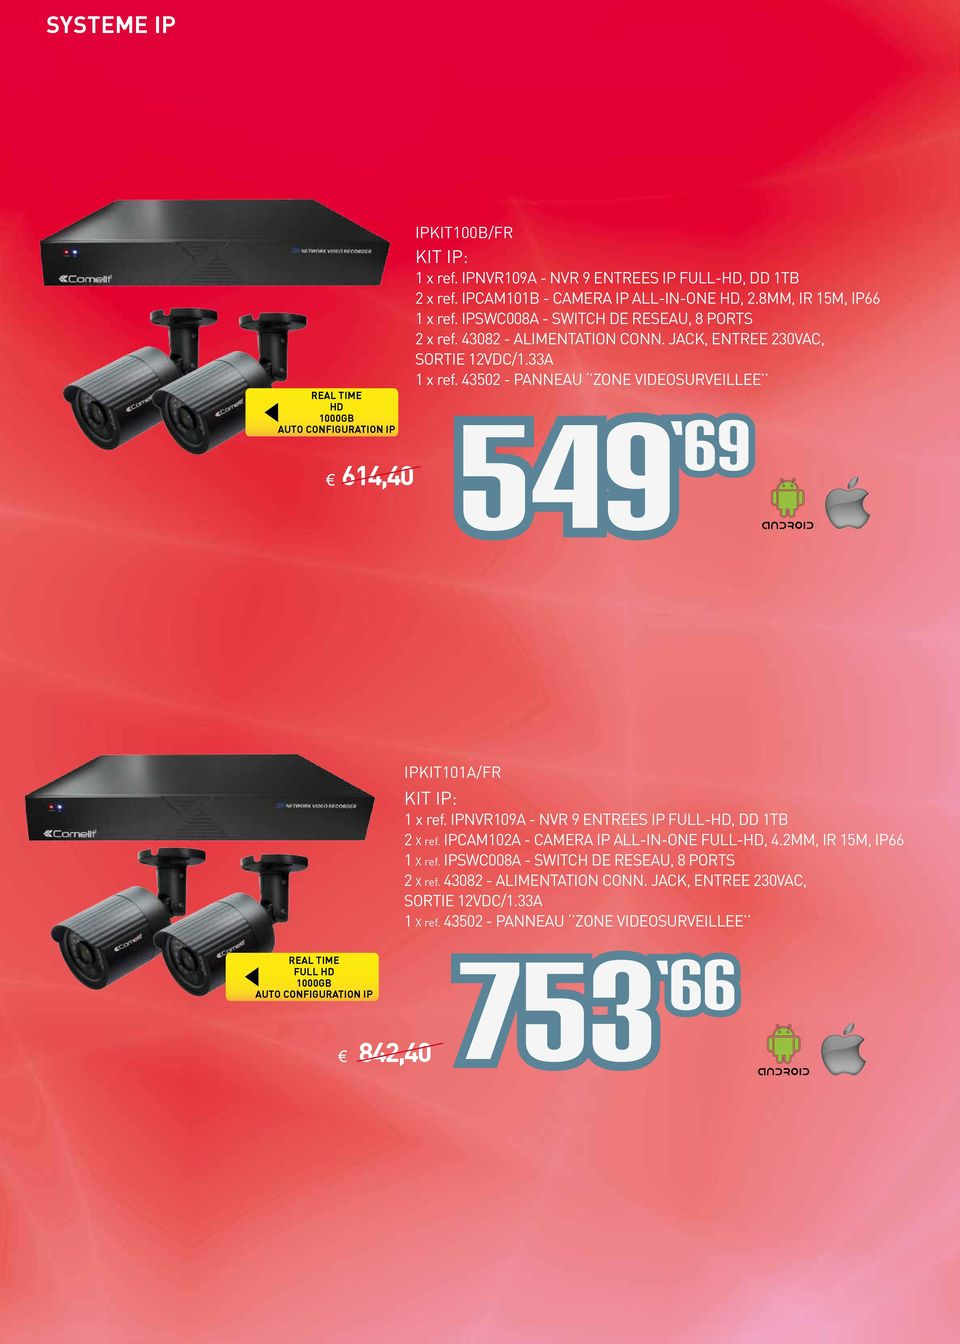 43502 - PANNEAU ZONE VIDEOSURVEILLEE 69 IPKIT101A/FR KIT IP: 1 x ref. IPNVR109A - NVR 9 ENTREES IP FULL-HD, DD 1TB 2 X ref. IPCAM102A - CAMERA IP ALL-IN-ONE FULL-HD, 4.